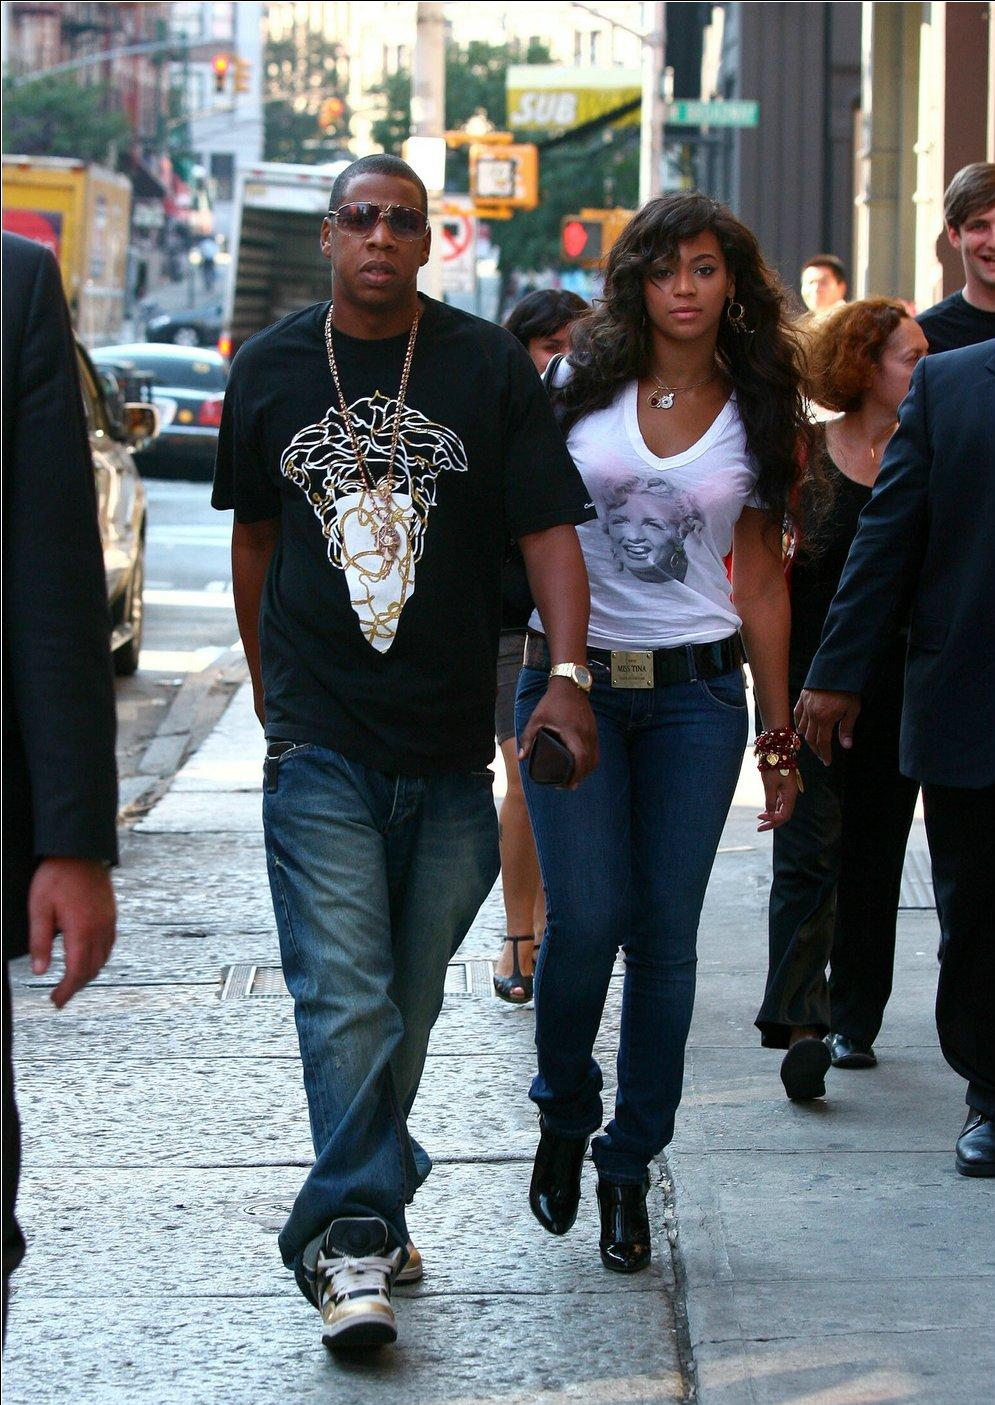 jay-z-crooks-castles-medusa-shirt-roc-a-fella-chain-beyonce